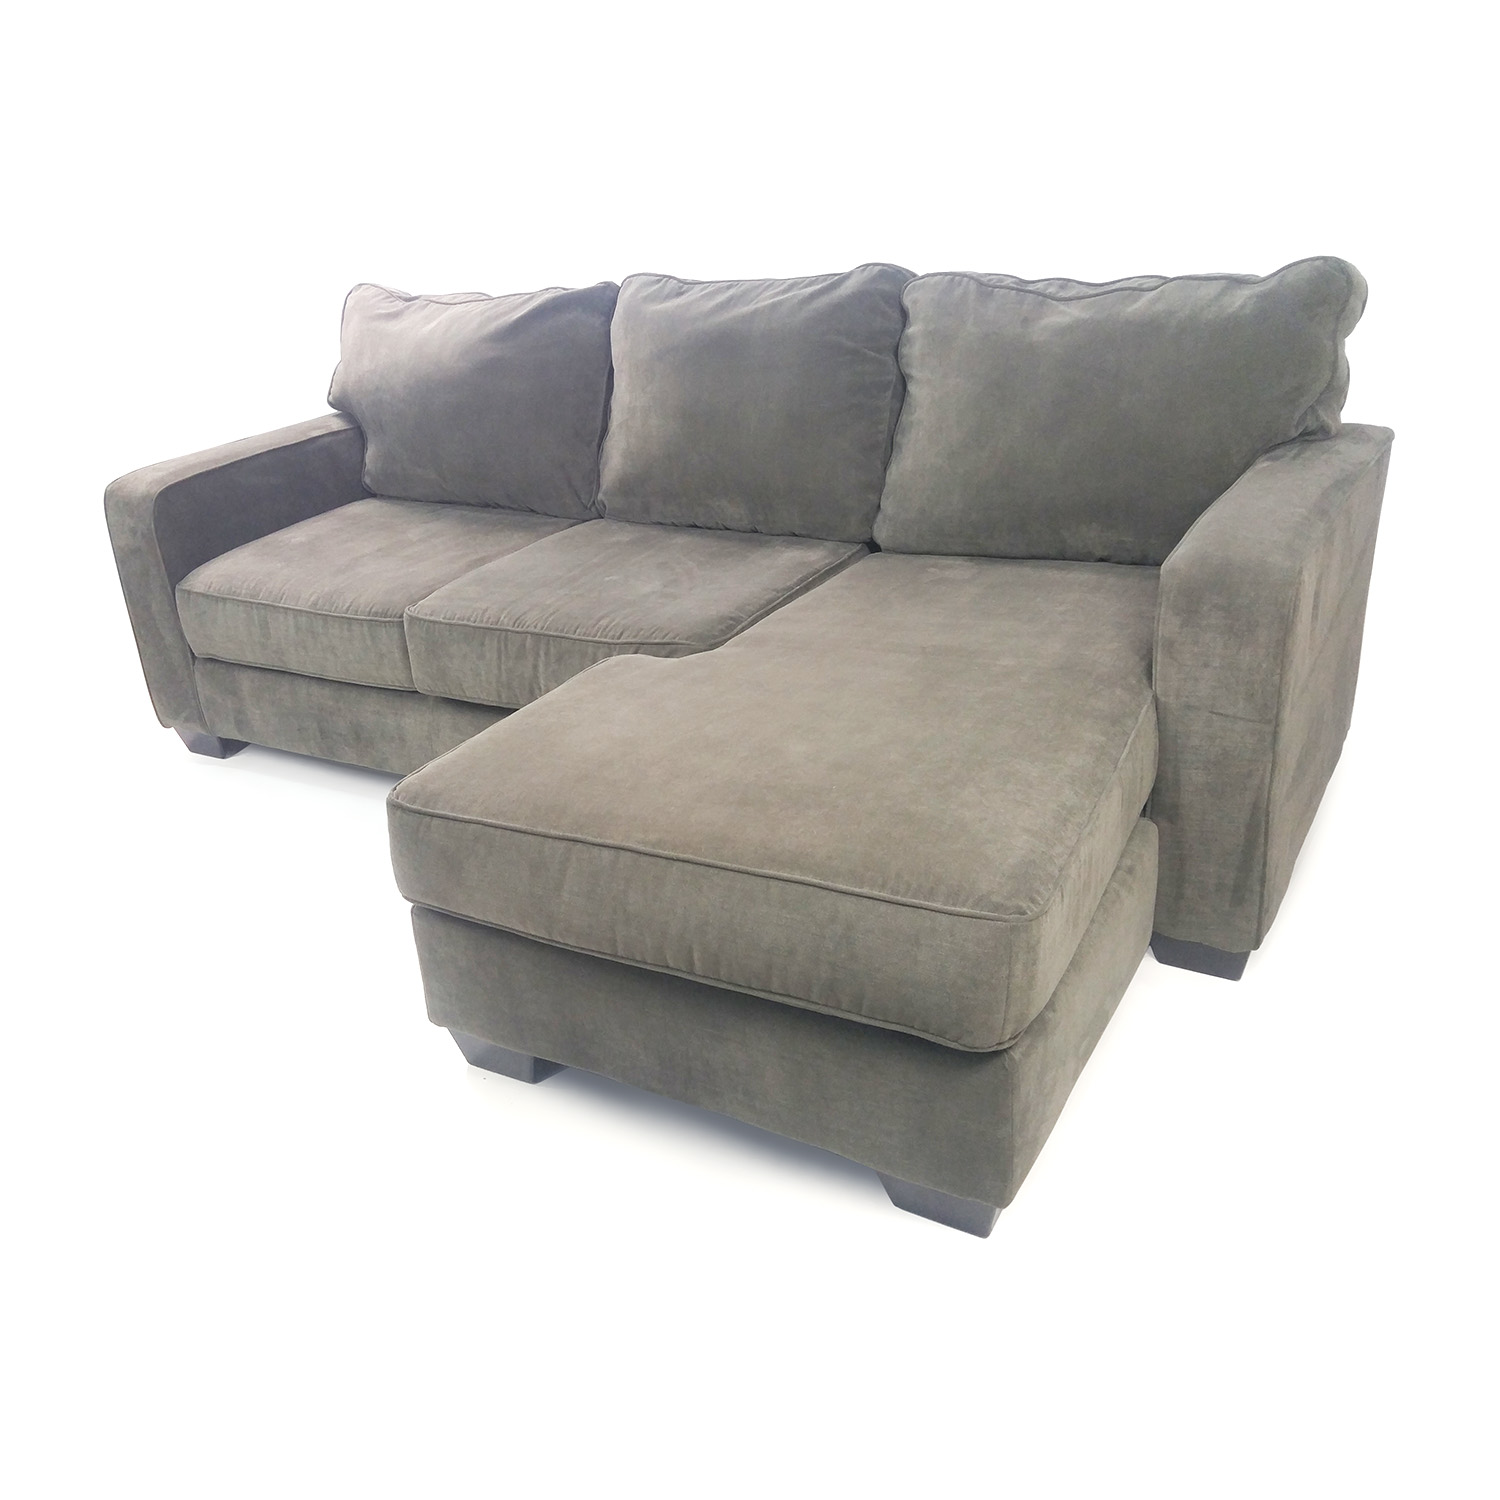 Hodan sofa chaise hodan marble sofa chaise signature for Ashley chaise lounge recliner